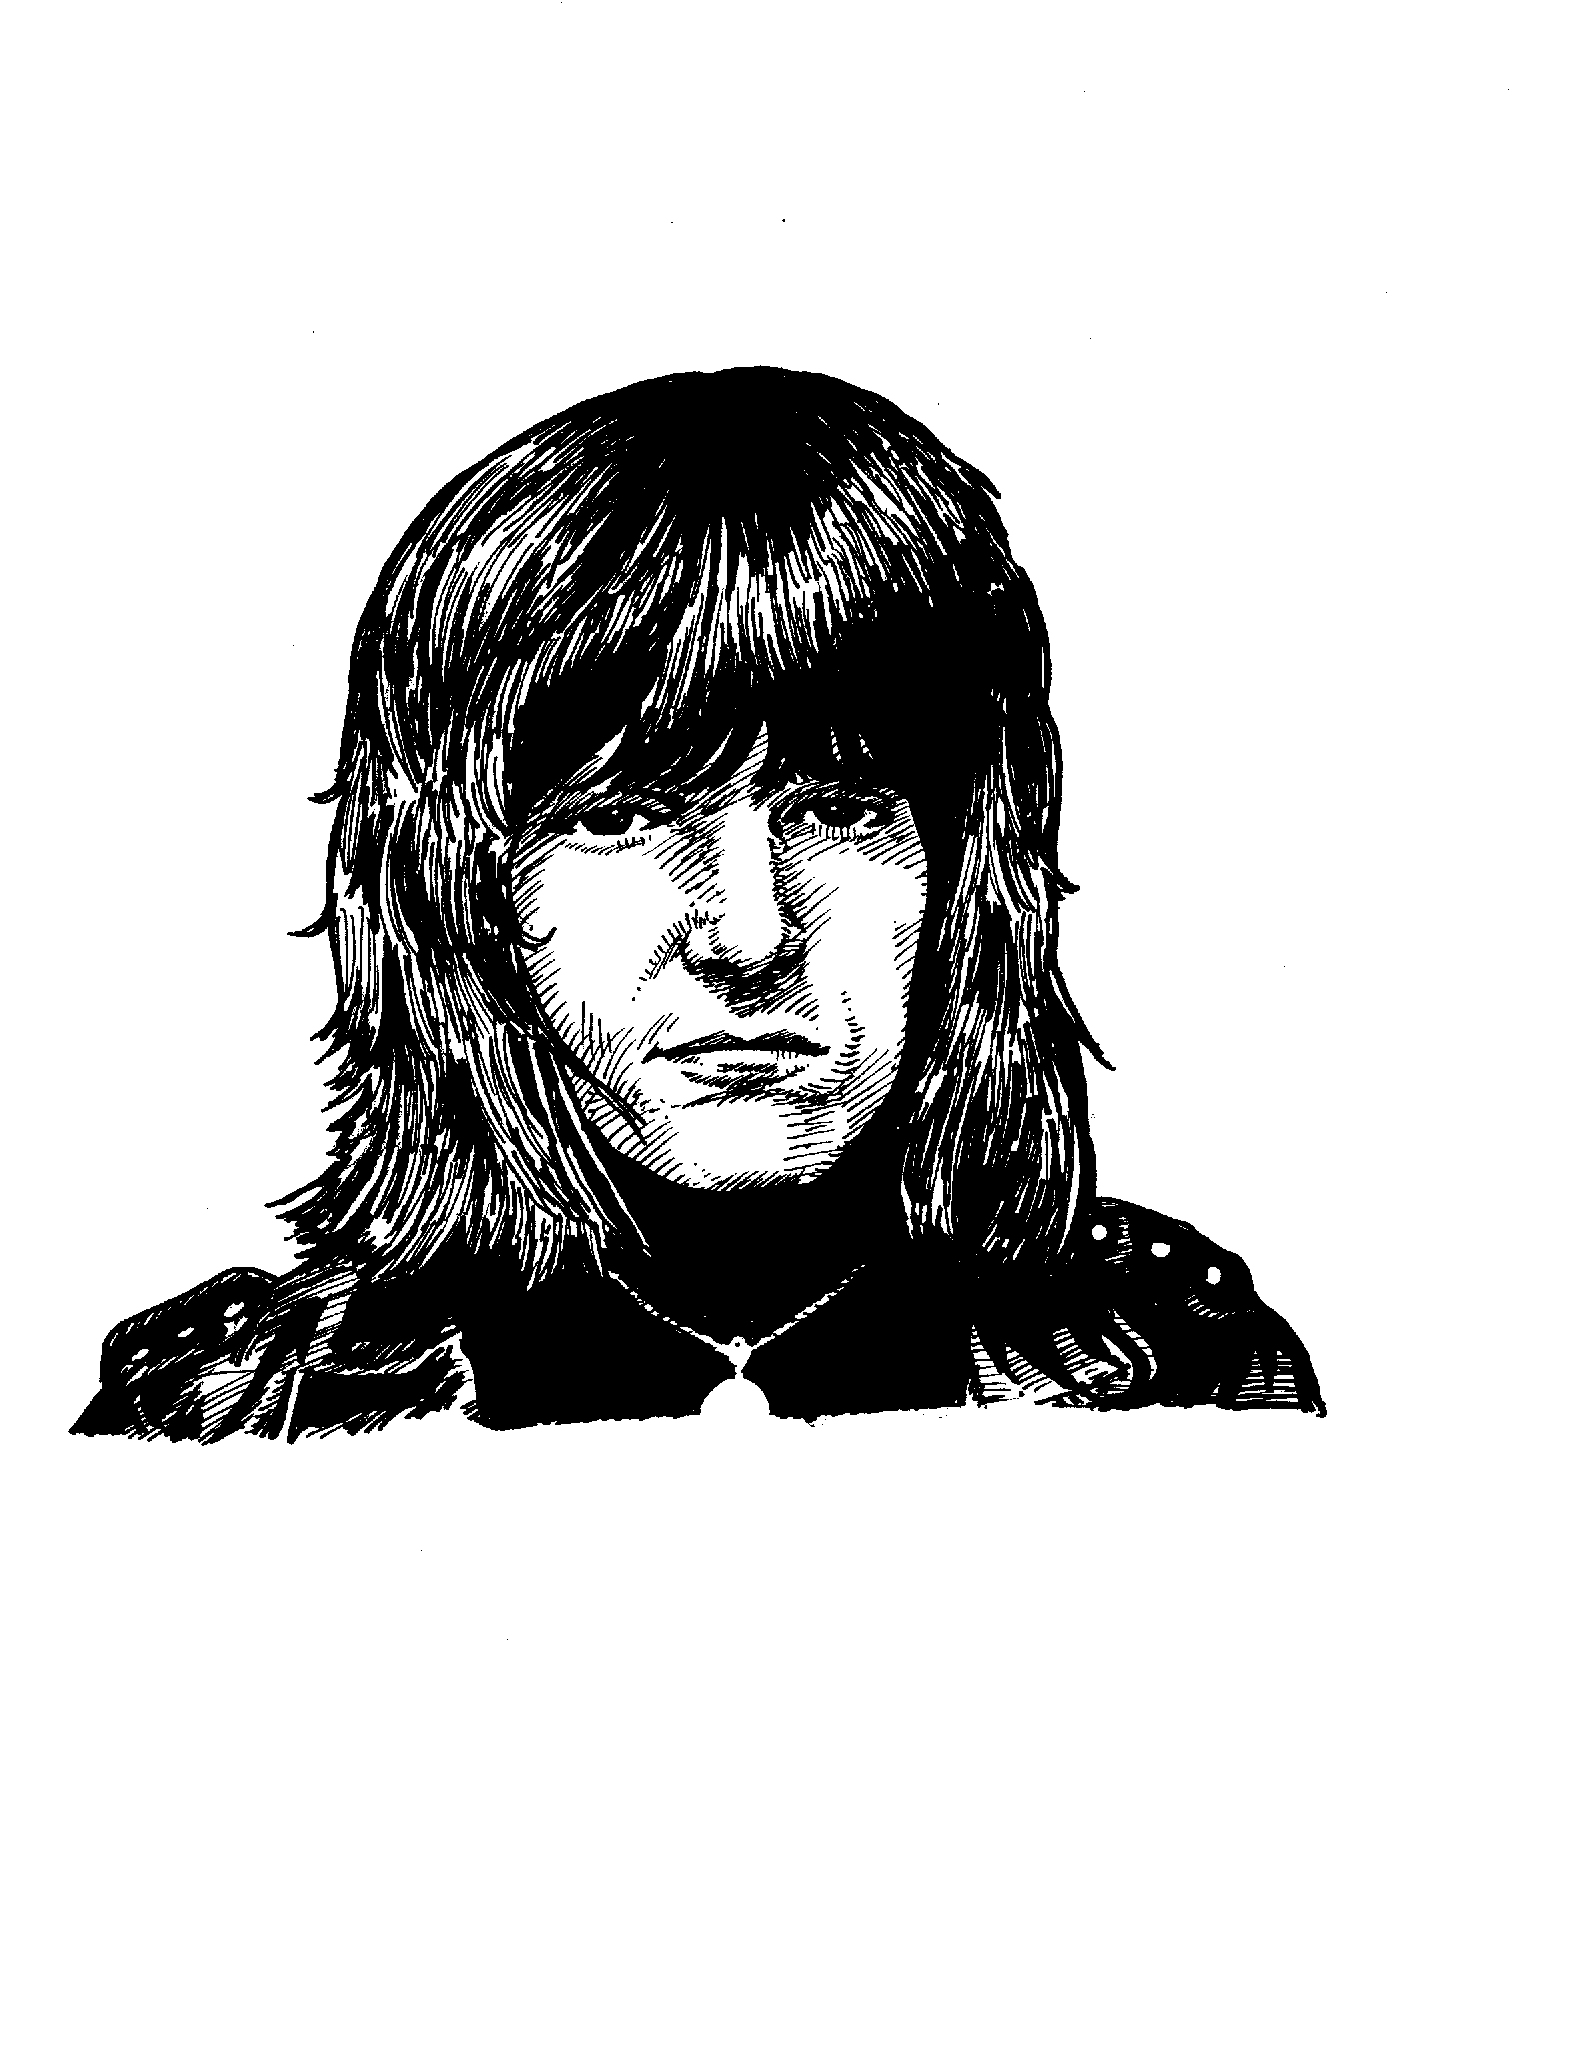 $225, Keith Emerson from GZD